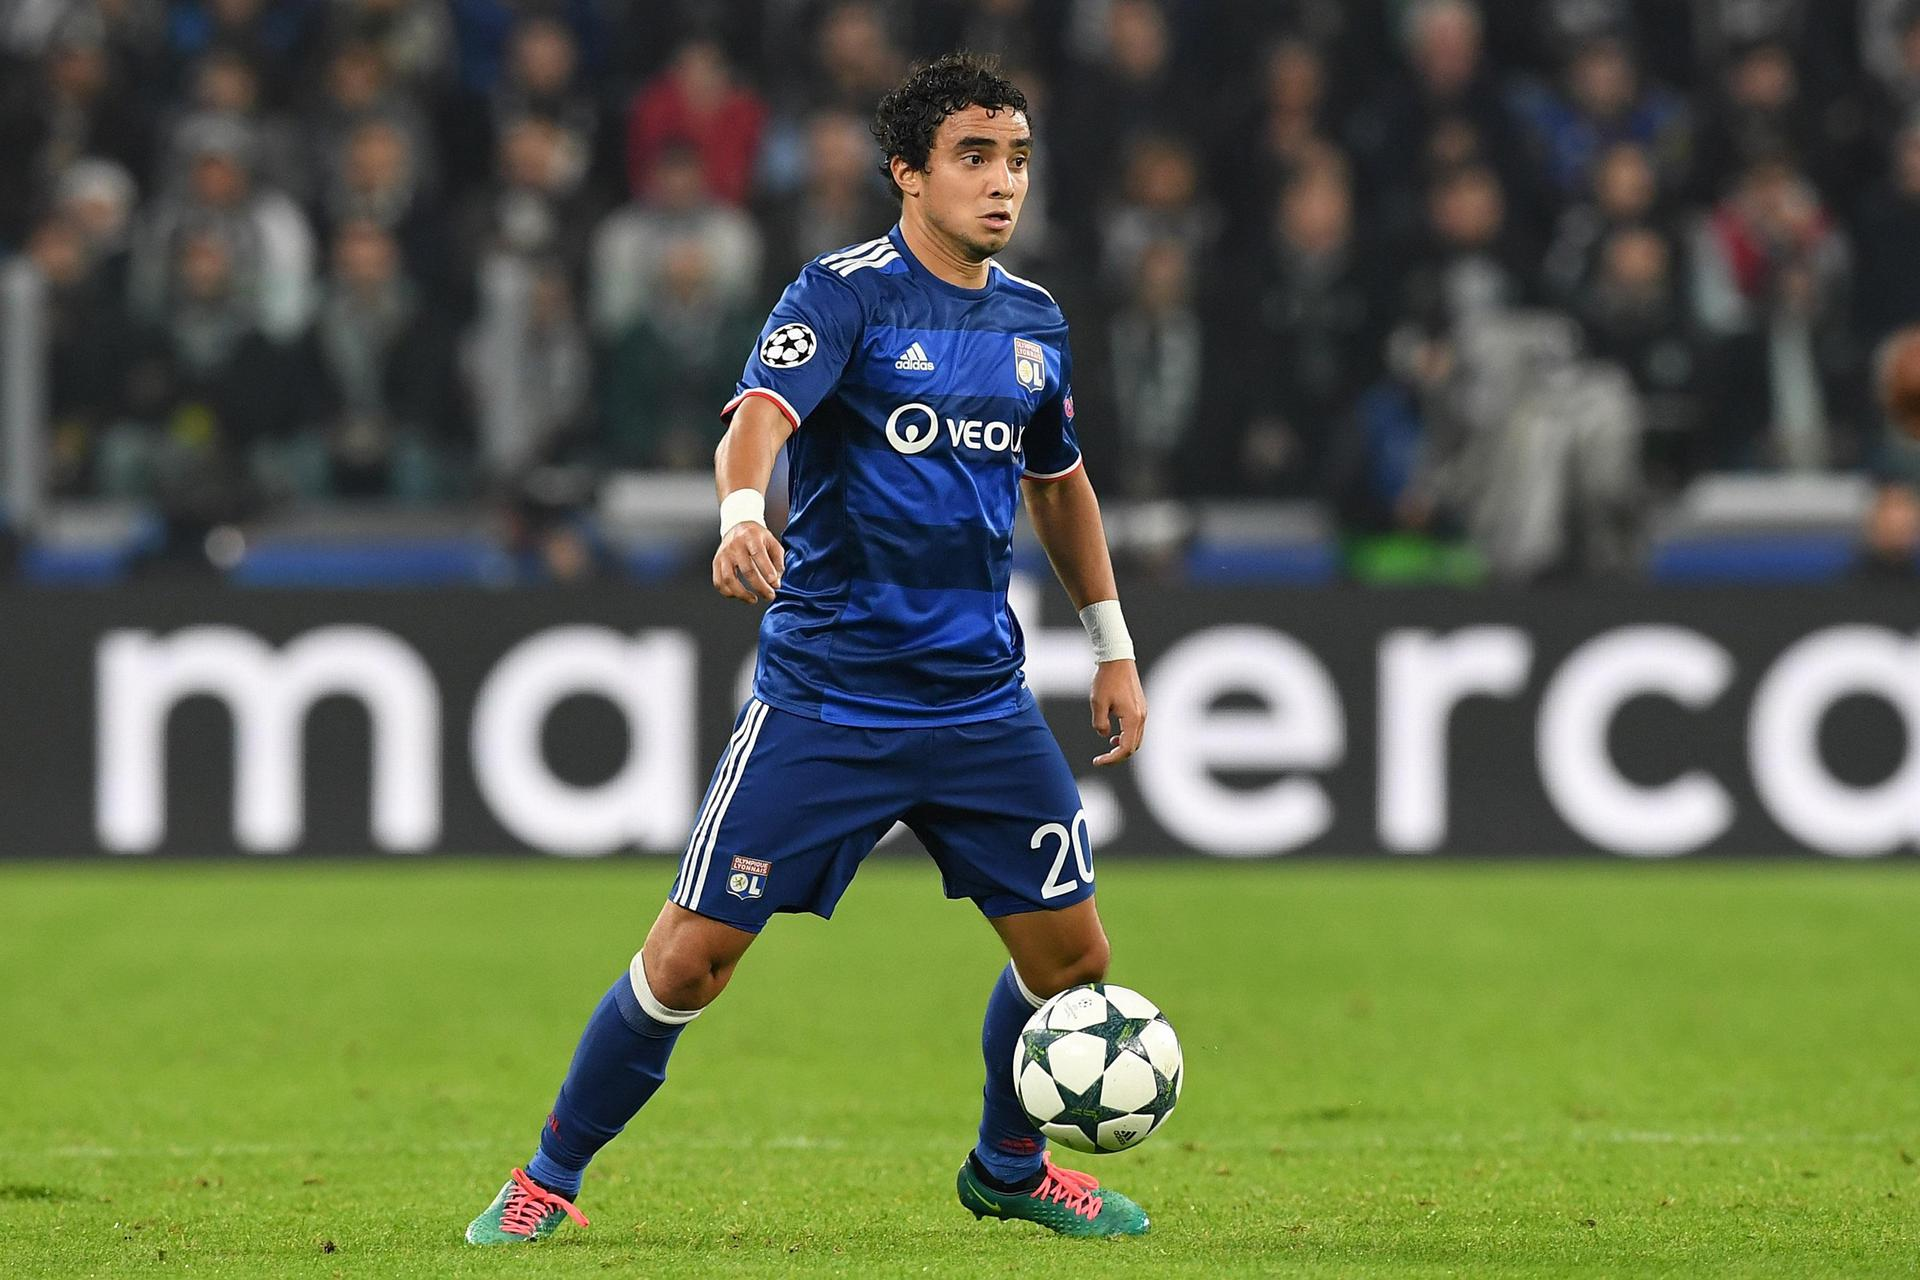 Rafael is hoping to be fit again soon to compete for Lyon.